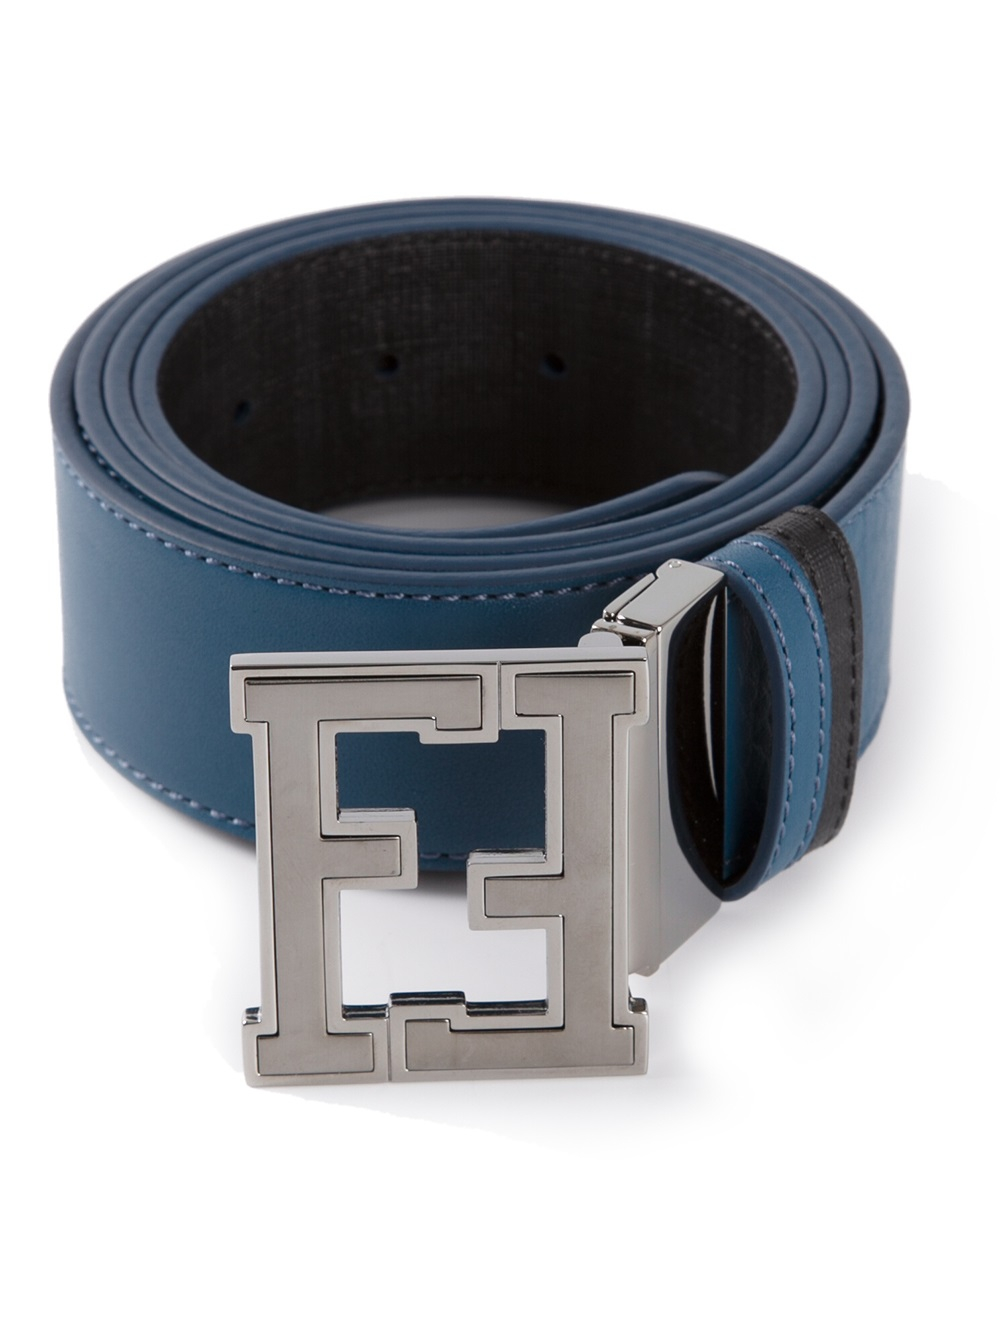 Lyst - Fendi Branded Buckle Belt in Blue for Men